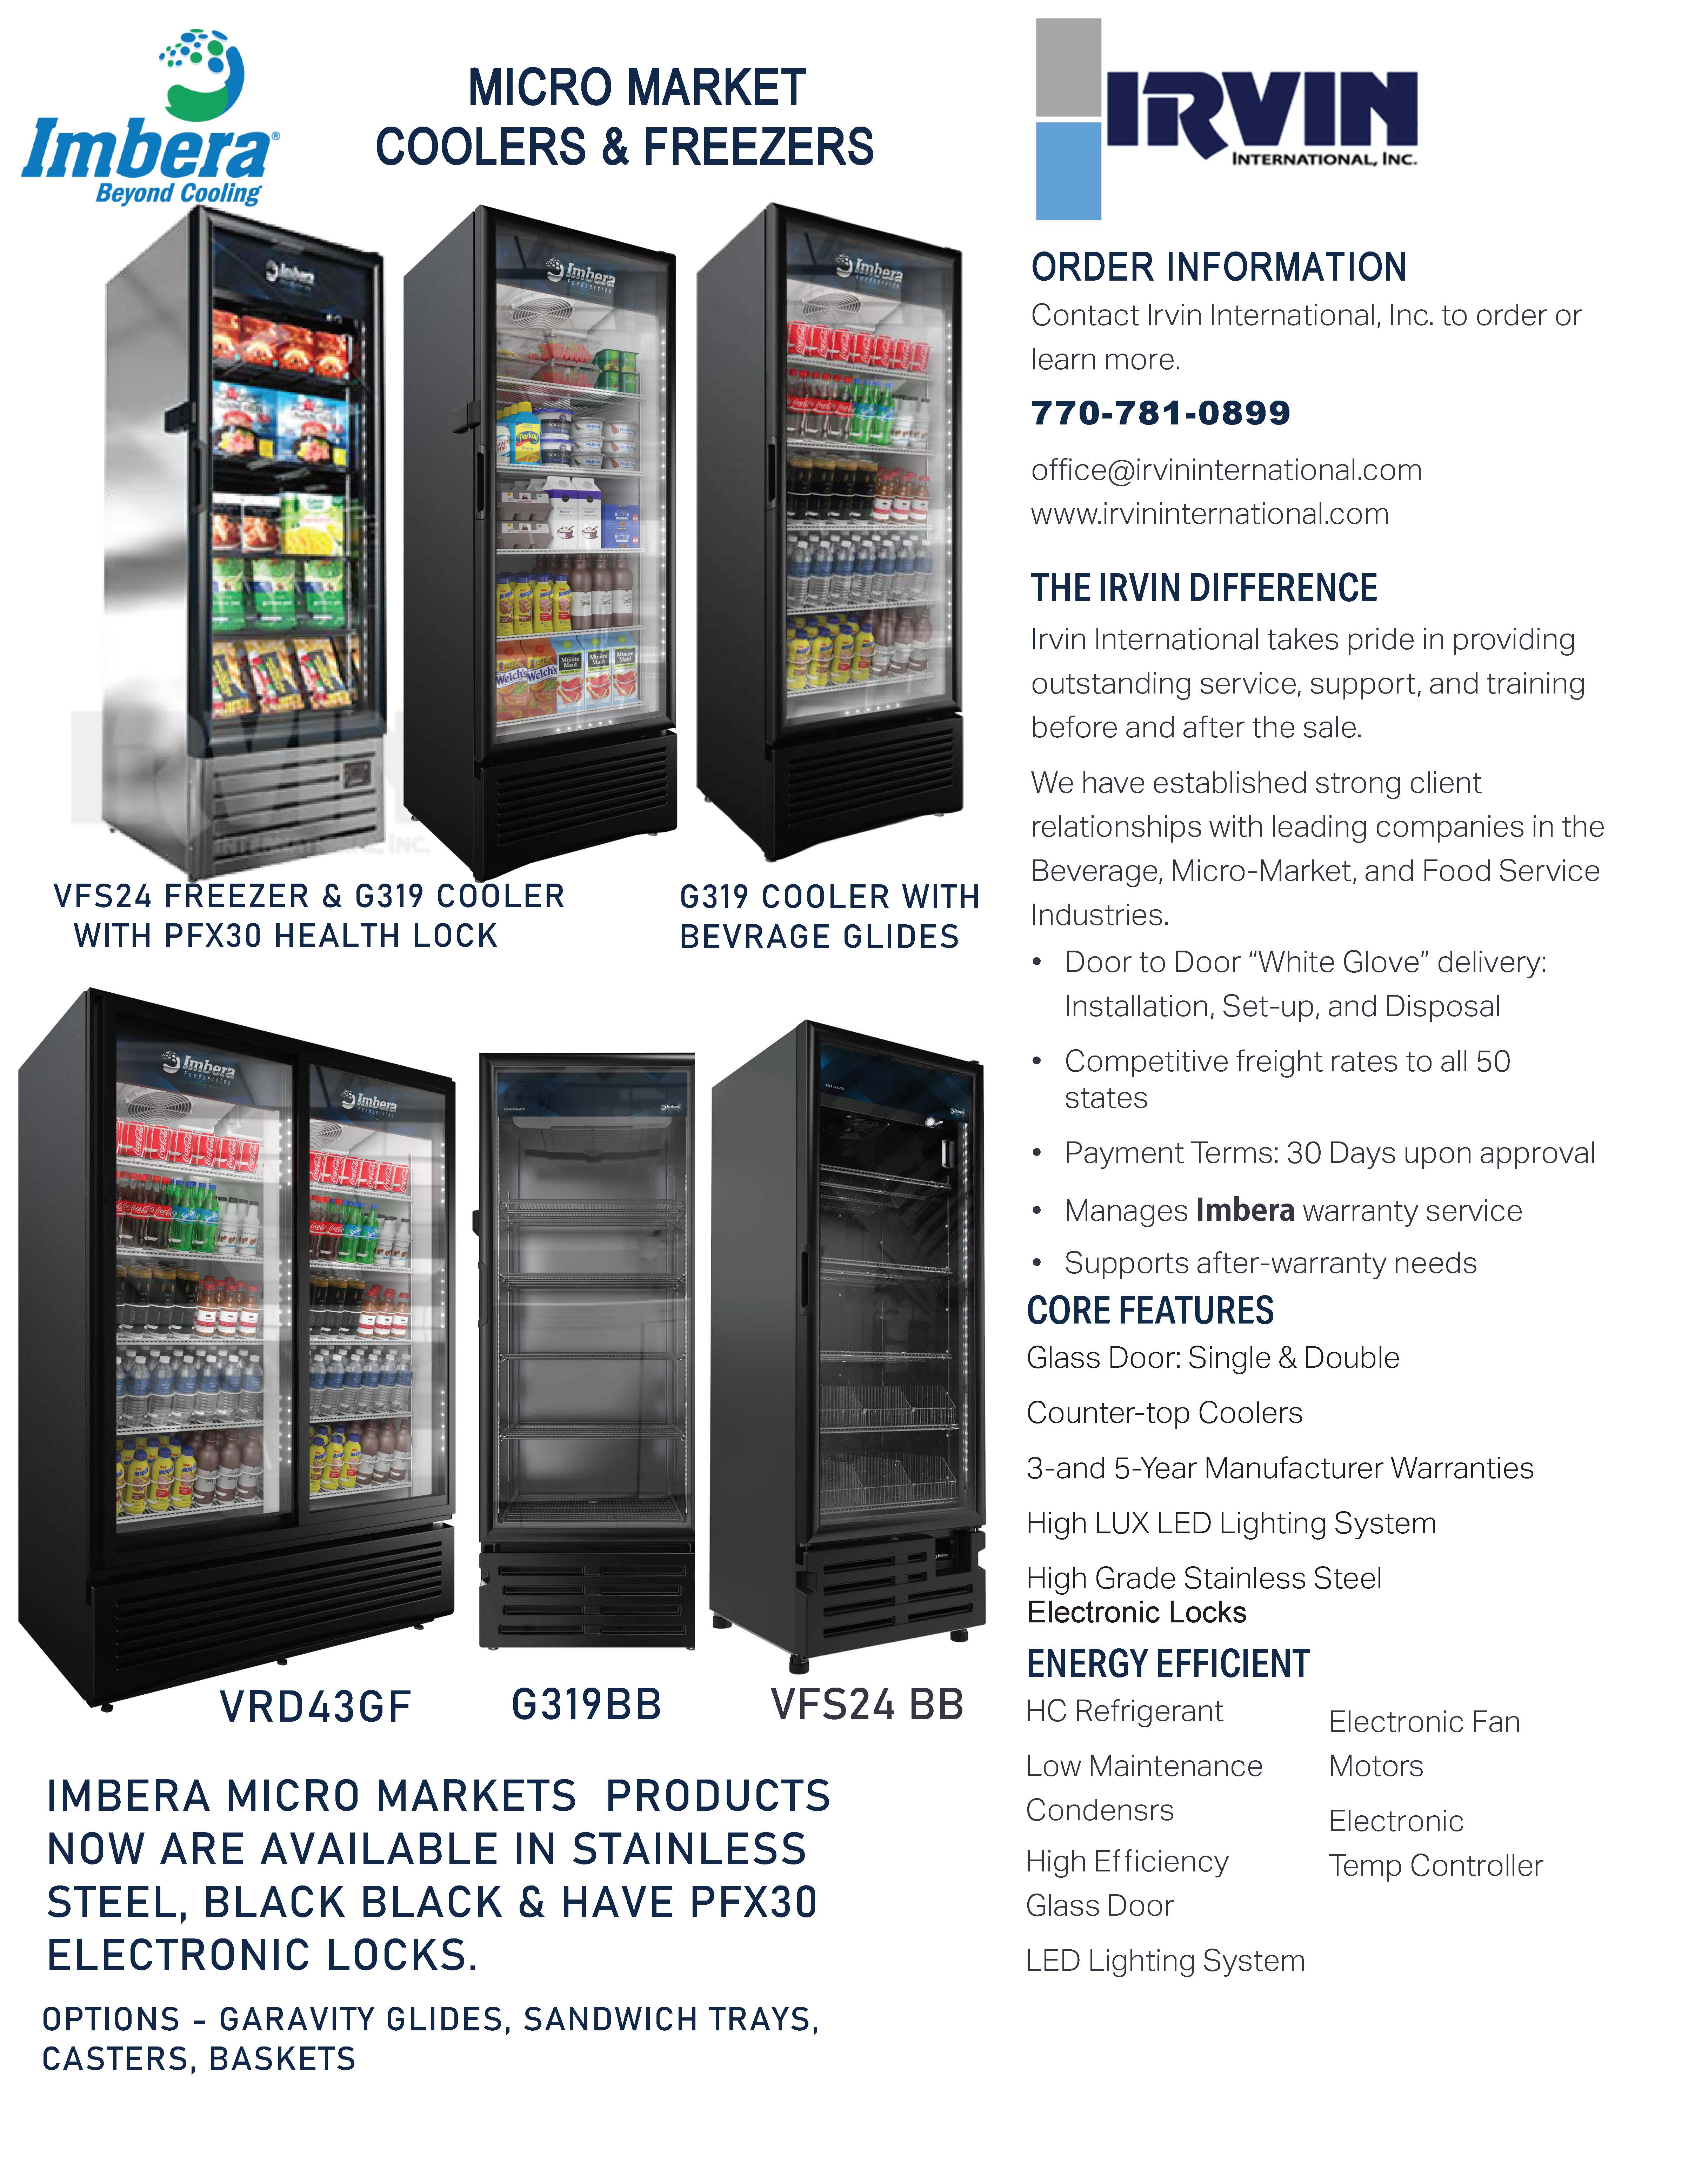 Irvin specializes in Beverage Coolers with branding for new beverage companies and food coolers and freezers for Micro Markets with White Glove Serv.